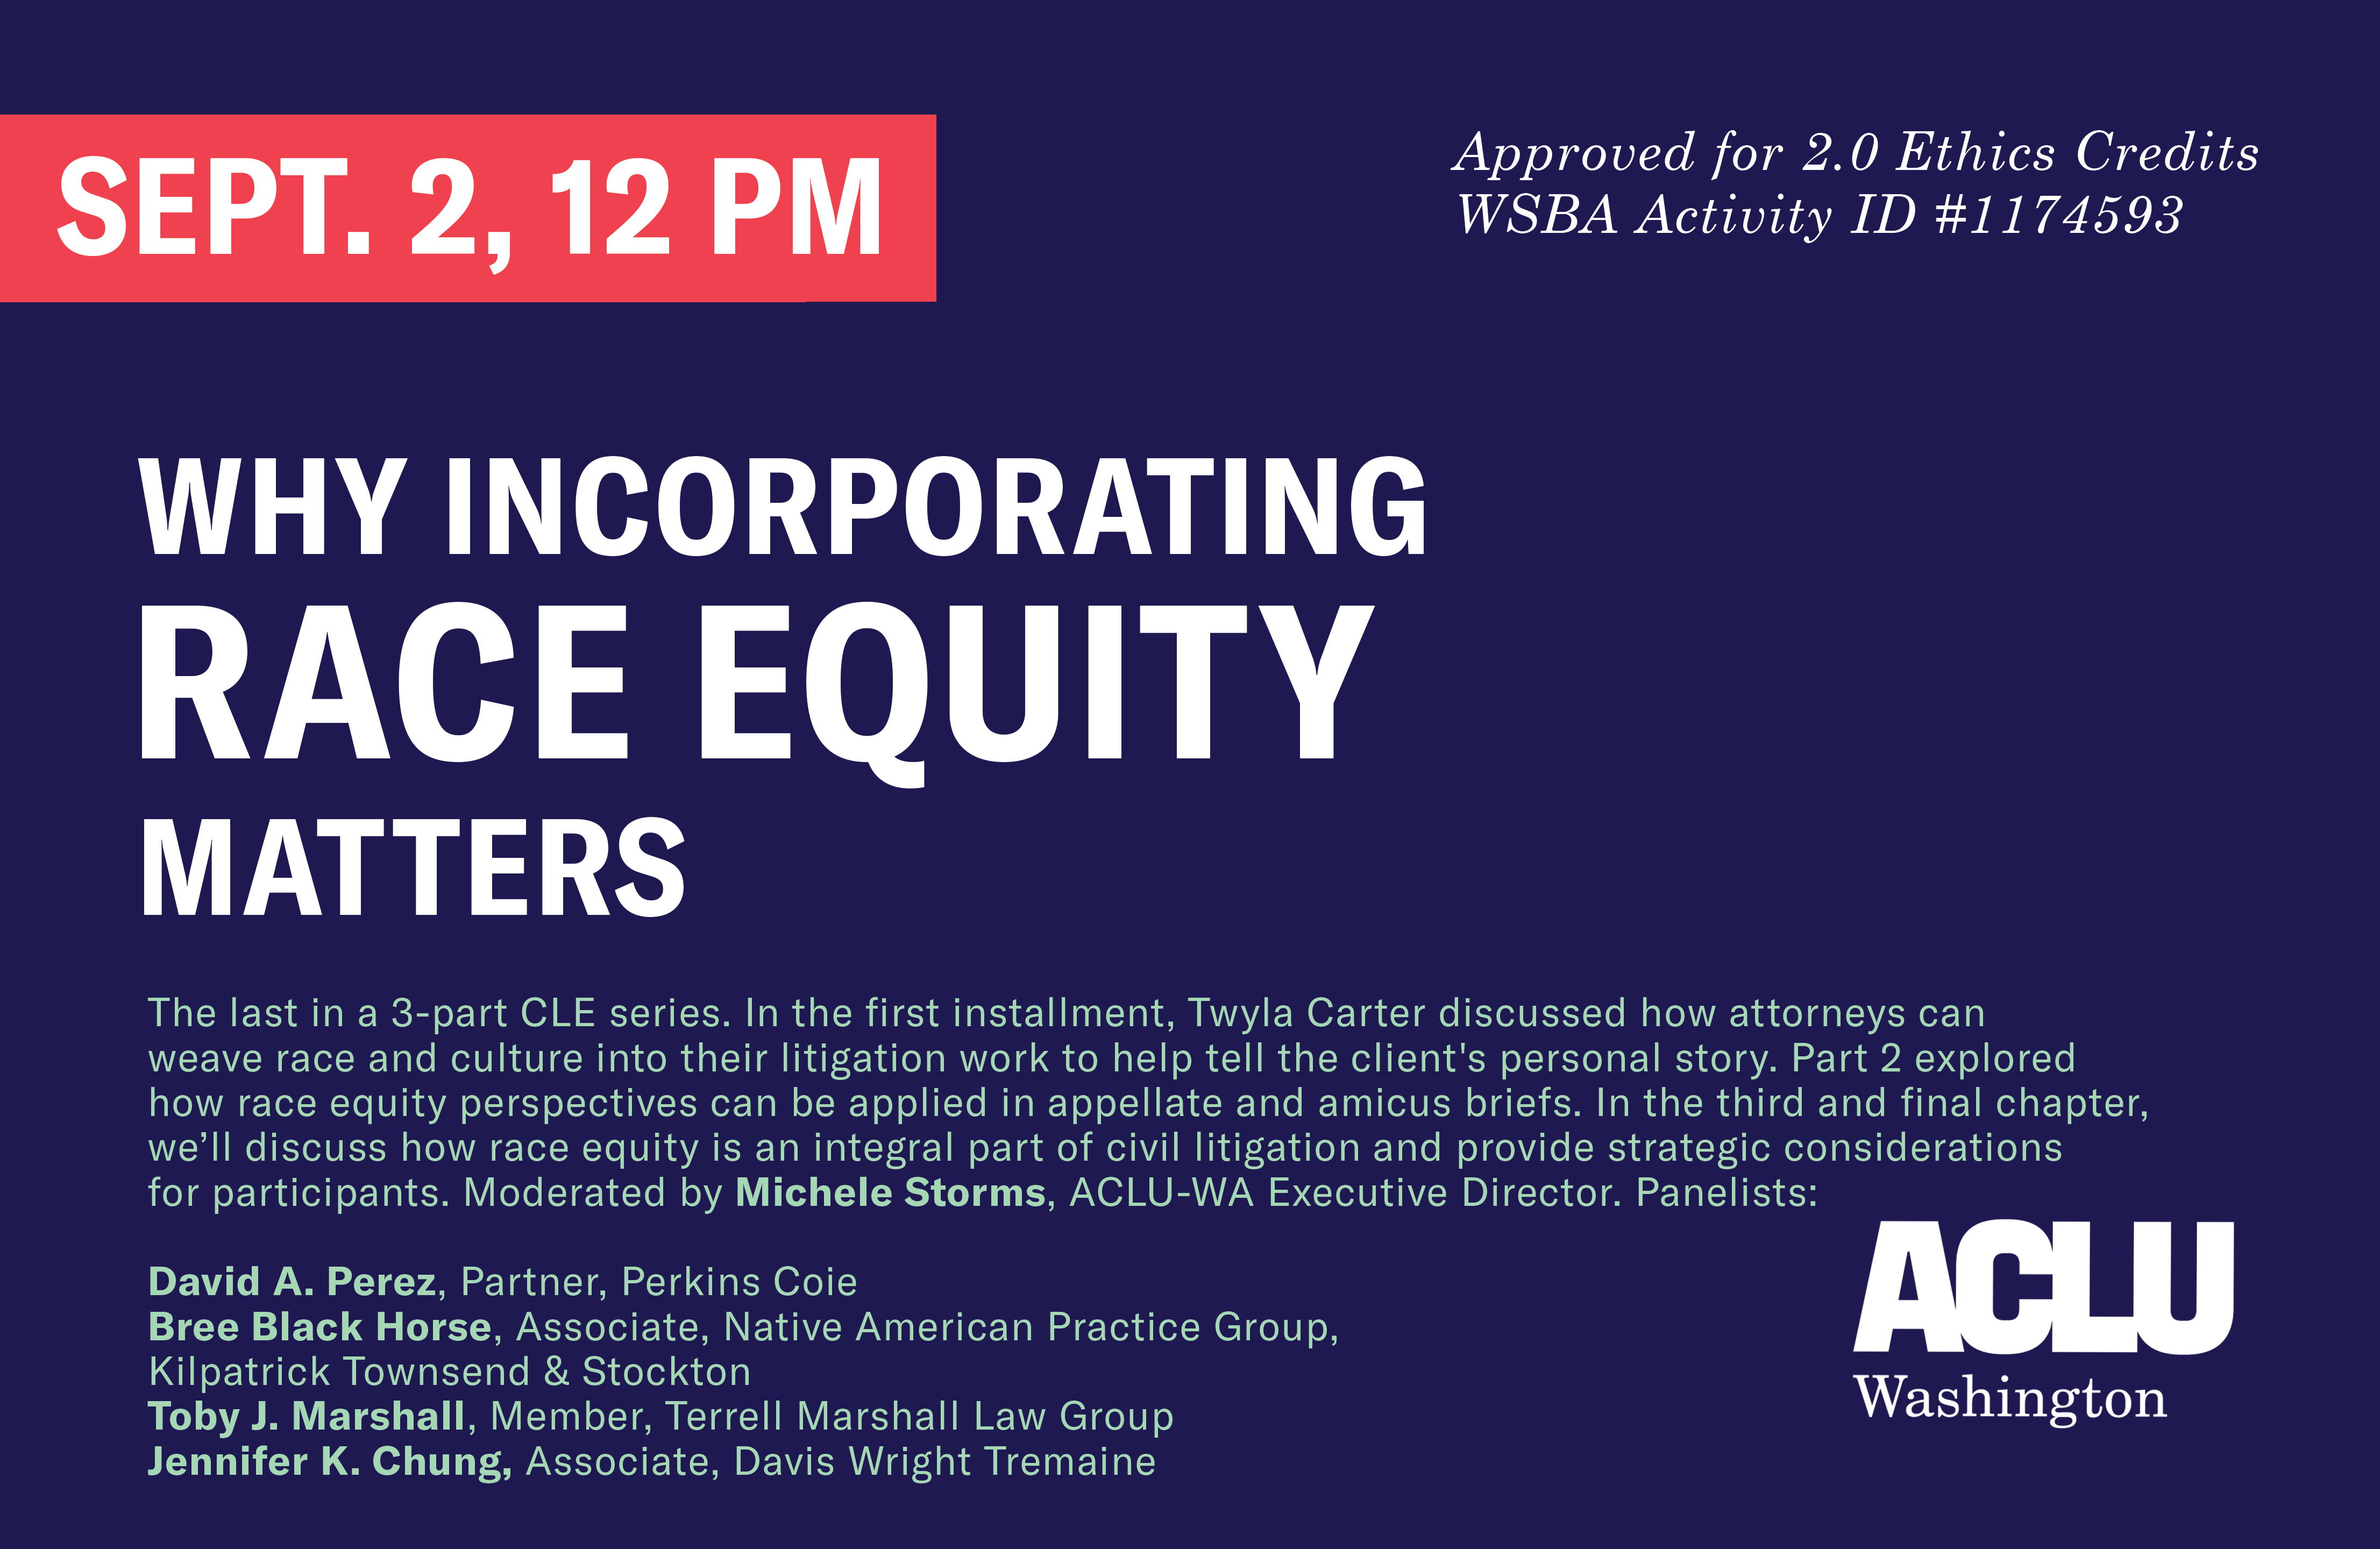 Why Incorporating Race Equity Matters